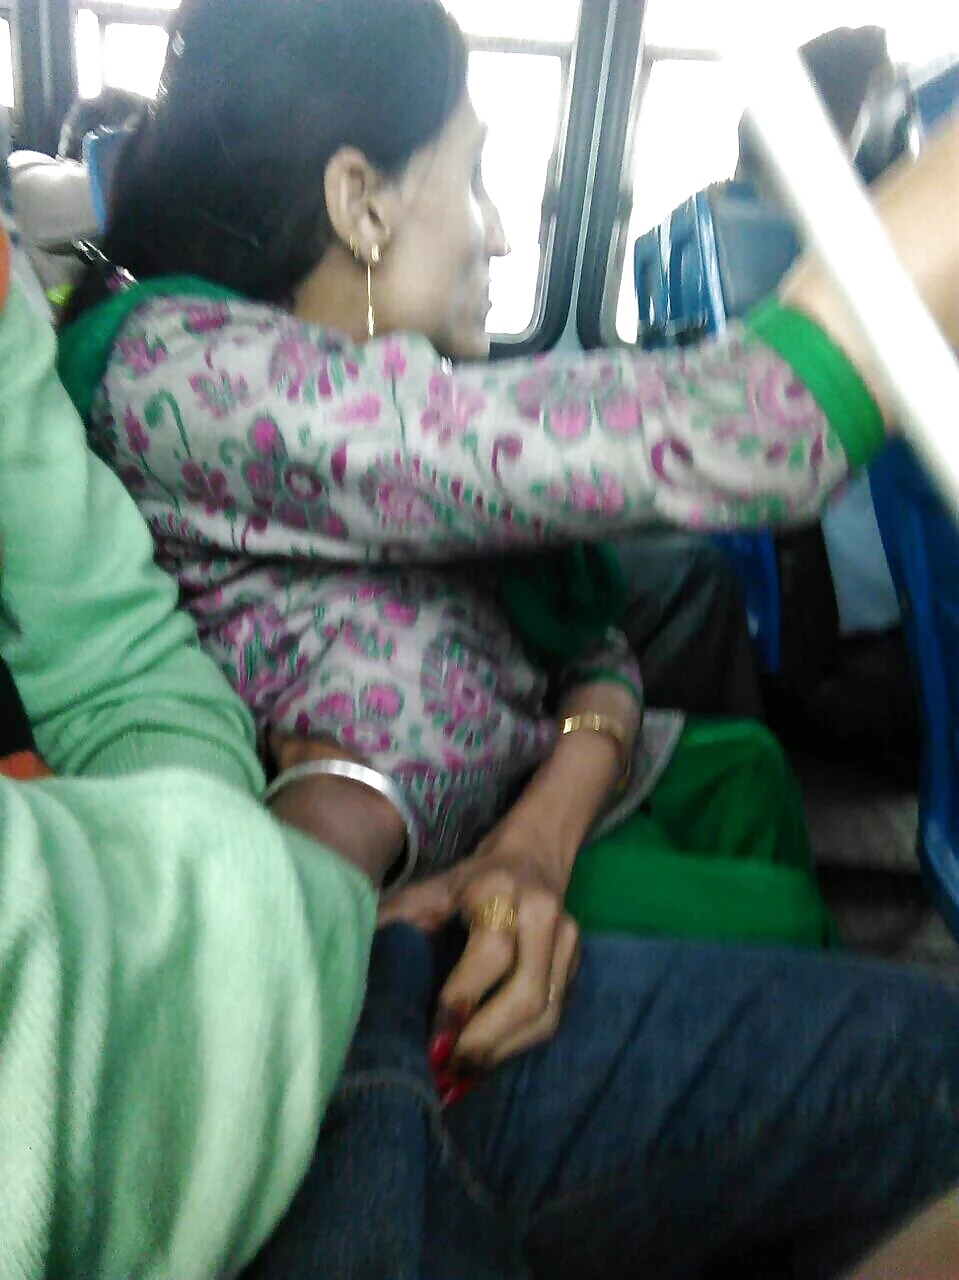 Old Groopers Touch Boobs In Bus Free Sex